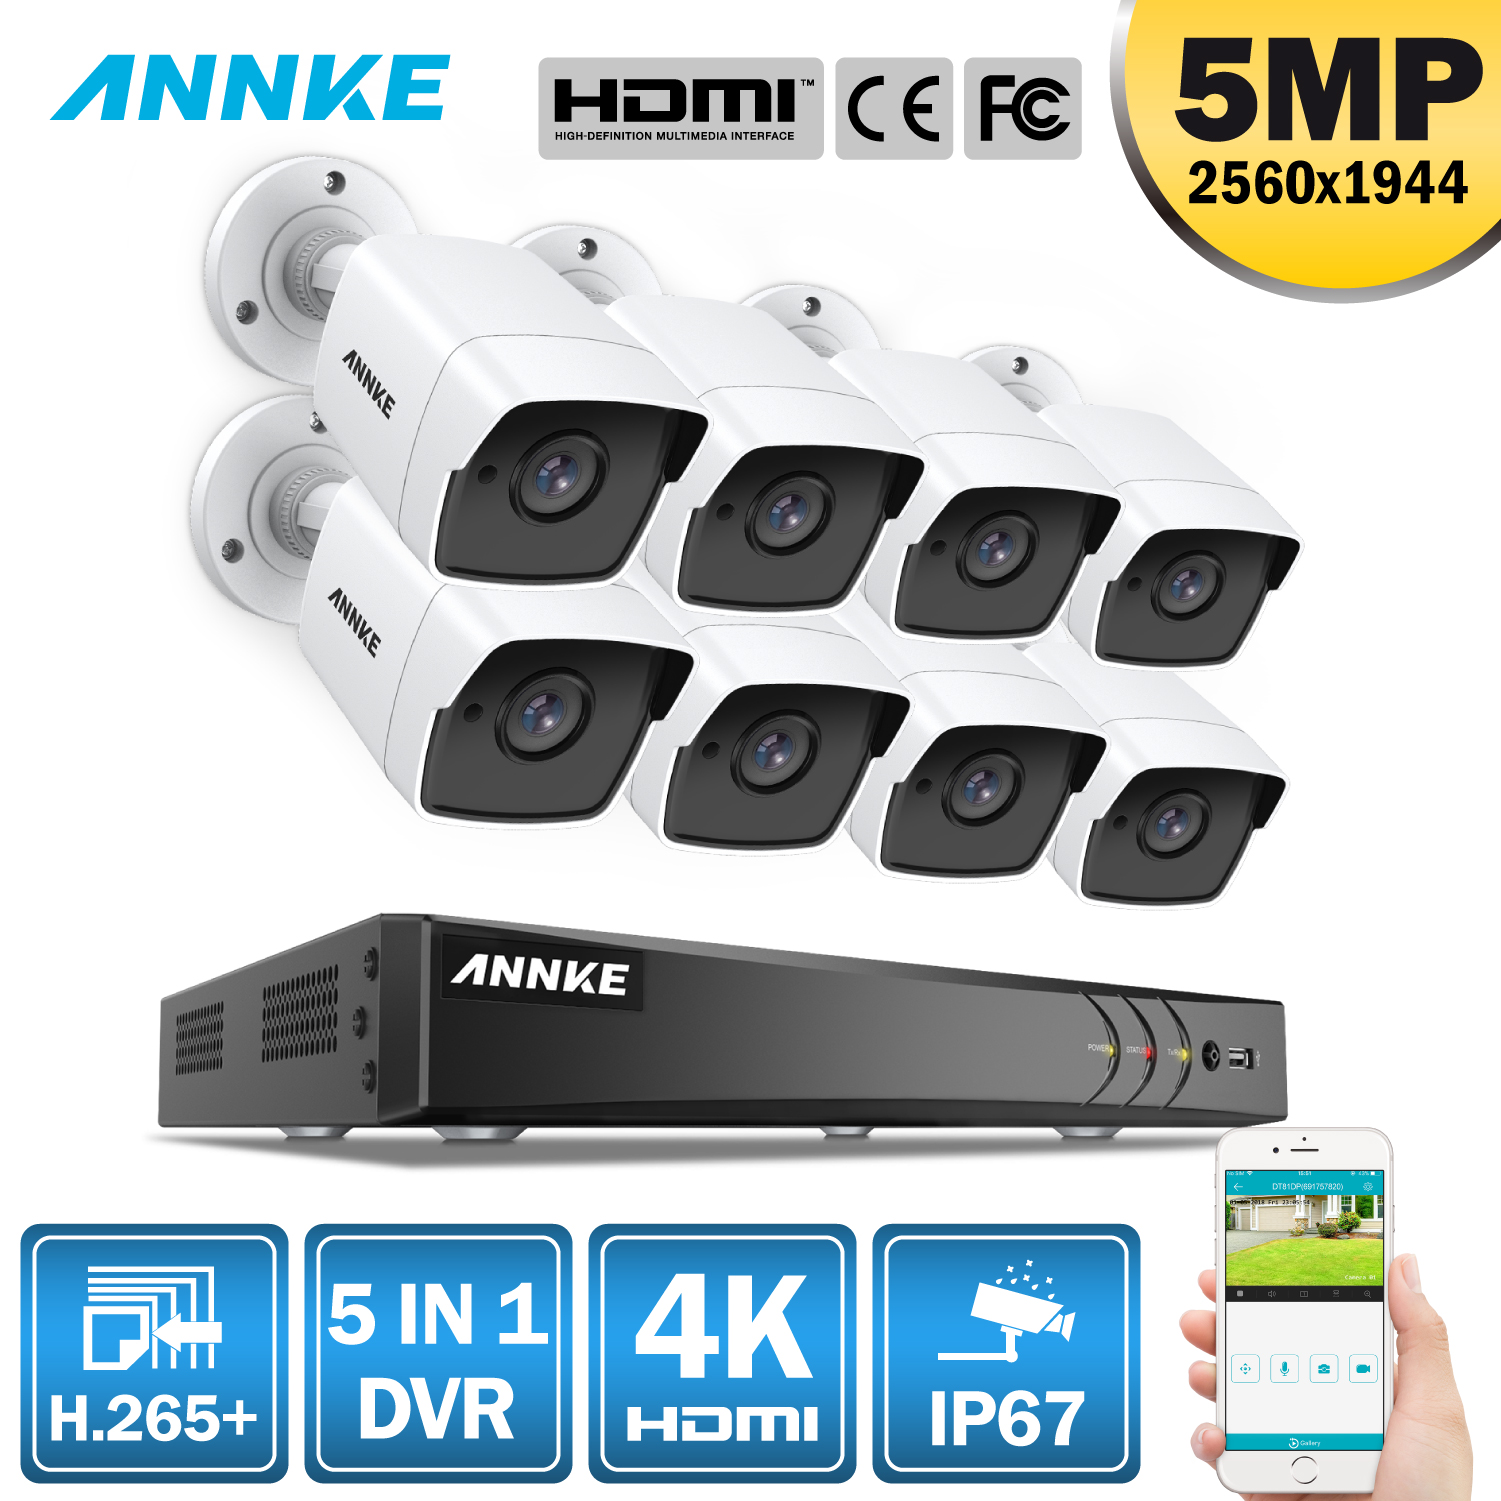 ANNKE 8CH 5MP 5IN1 Ultra HD Video Security Camera System H.265+ With 8PCS TVI Bullet Weatherproof Outdoor Surveillance Kit